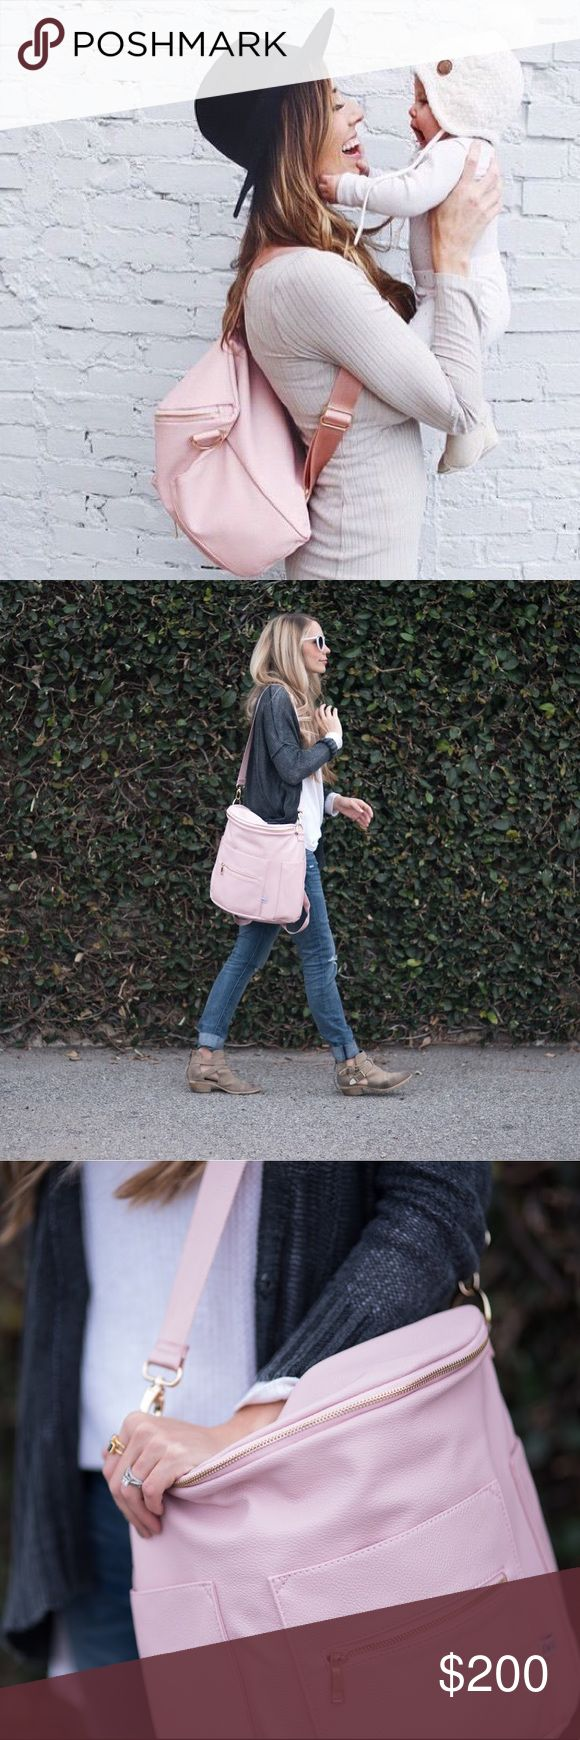 """❤️FAWN DESIGN Blush Backpack❤️ I have many of these so I'm just trying to recoup my $- I love in Utah where this company is located so I had to pay tax. NO TRADES!  We say diaper bag, but they make great anytime bags. Wear your bag as a backpack or messenger bag! Inside can be pulled out for easy cleaning-Outside and inside are fully wipeable faux leather. Total of 10 pockets; 4 outside, 6 inside including a zipper pocket.  13"""" high x 15"""" wide x 8"""" deep Messenger Strap is 51"""" at longest…"""